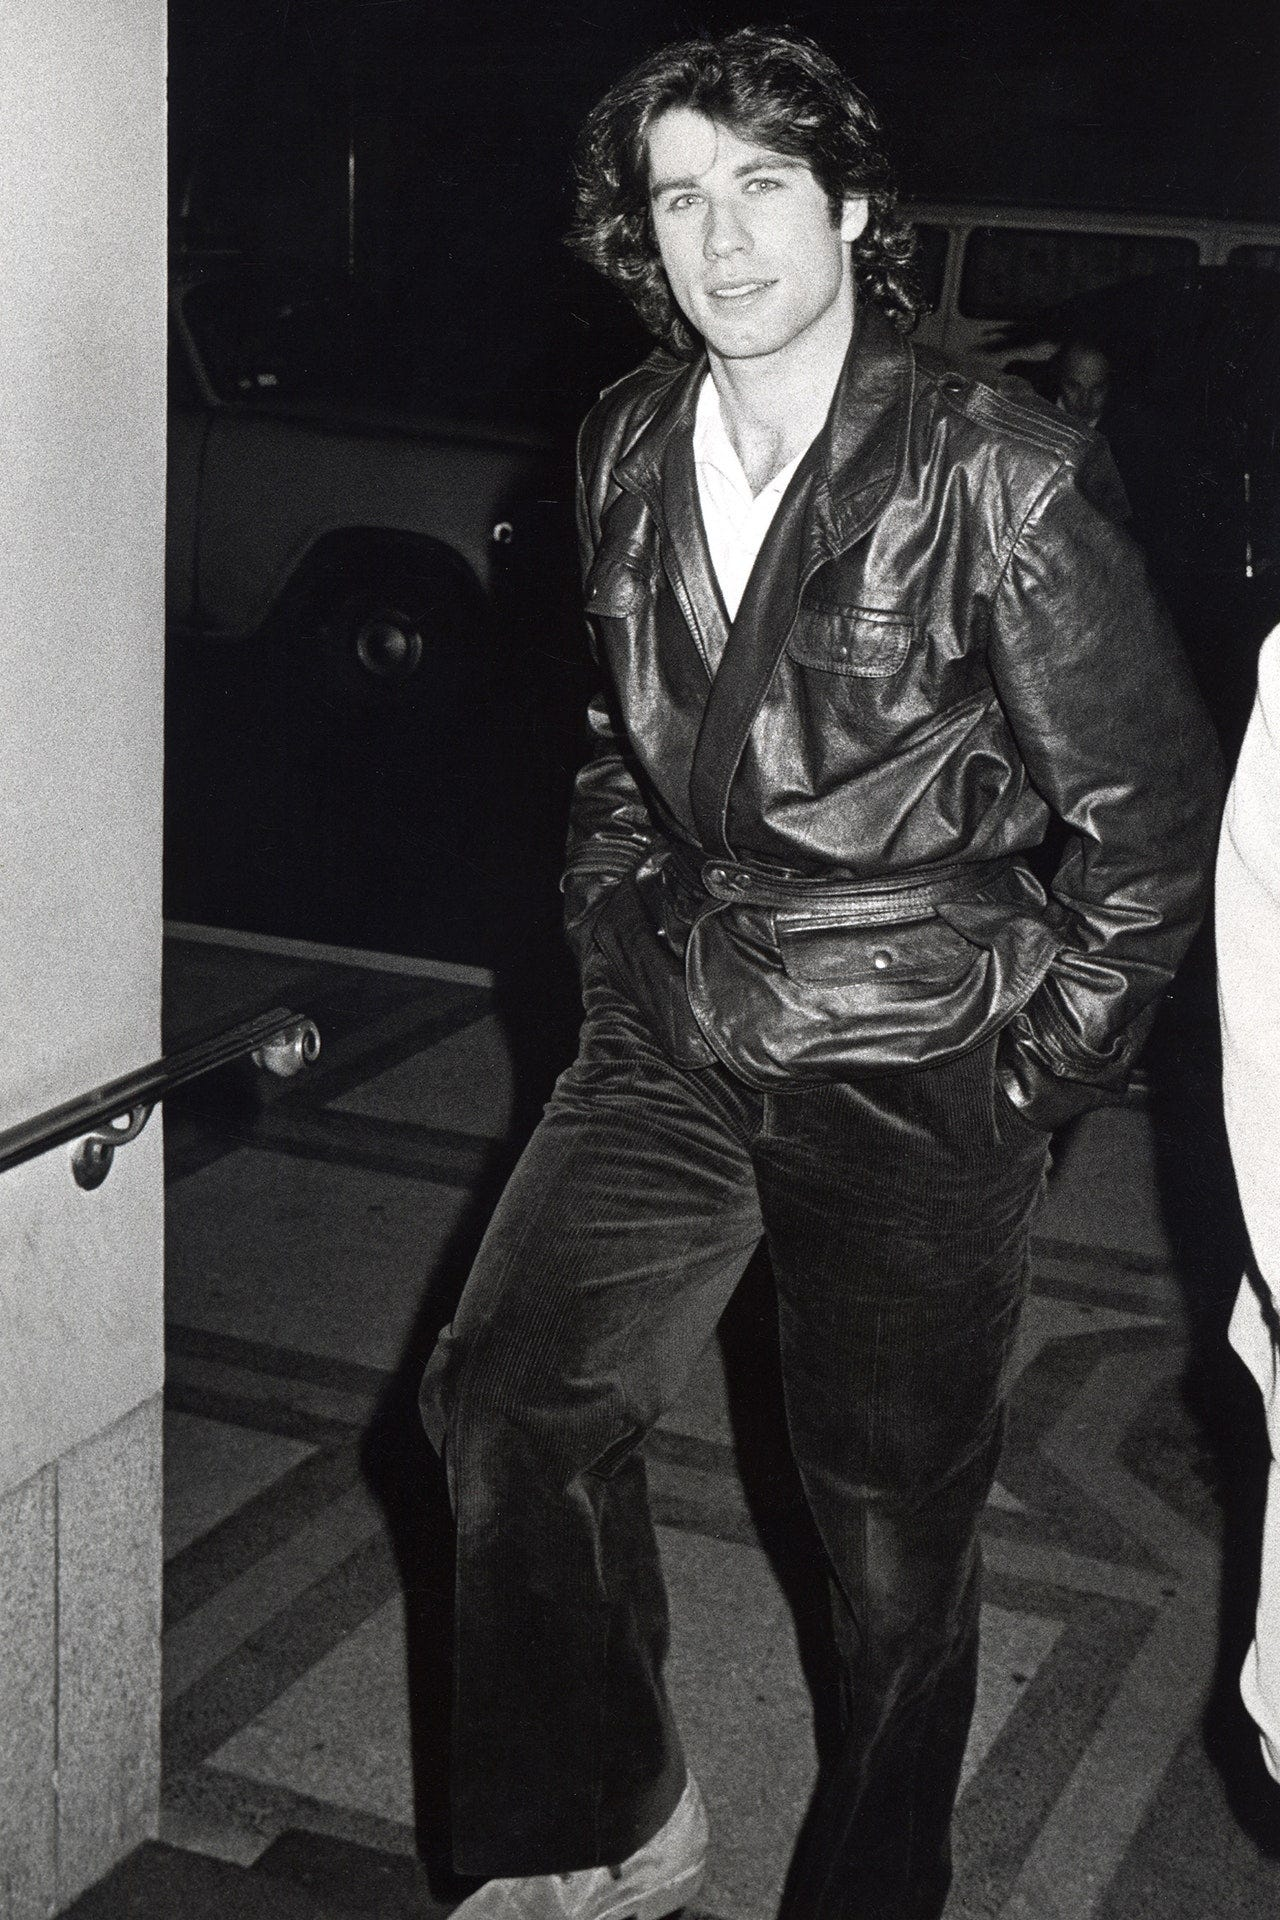 Style was the word for John Travolta in the 1970s | British GQ